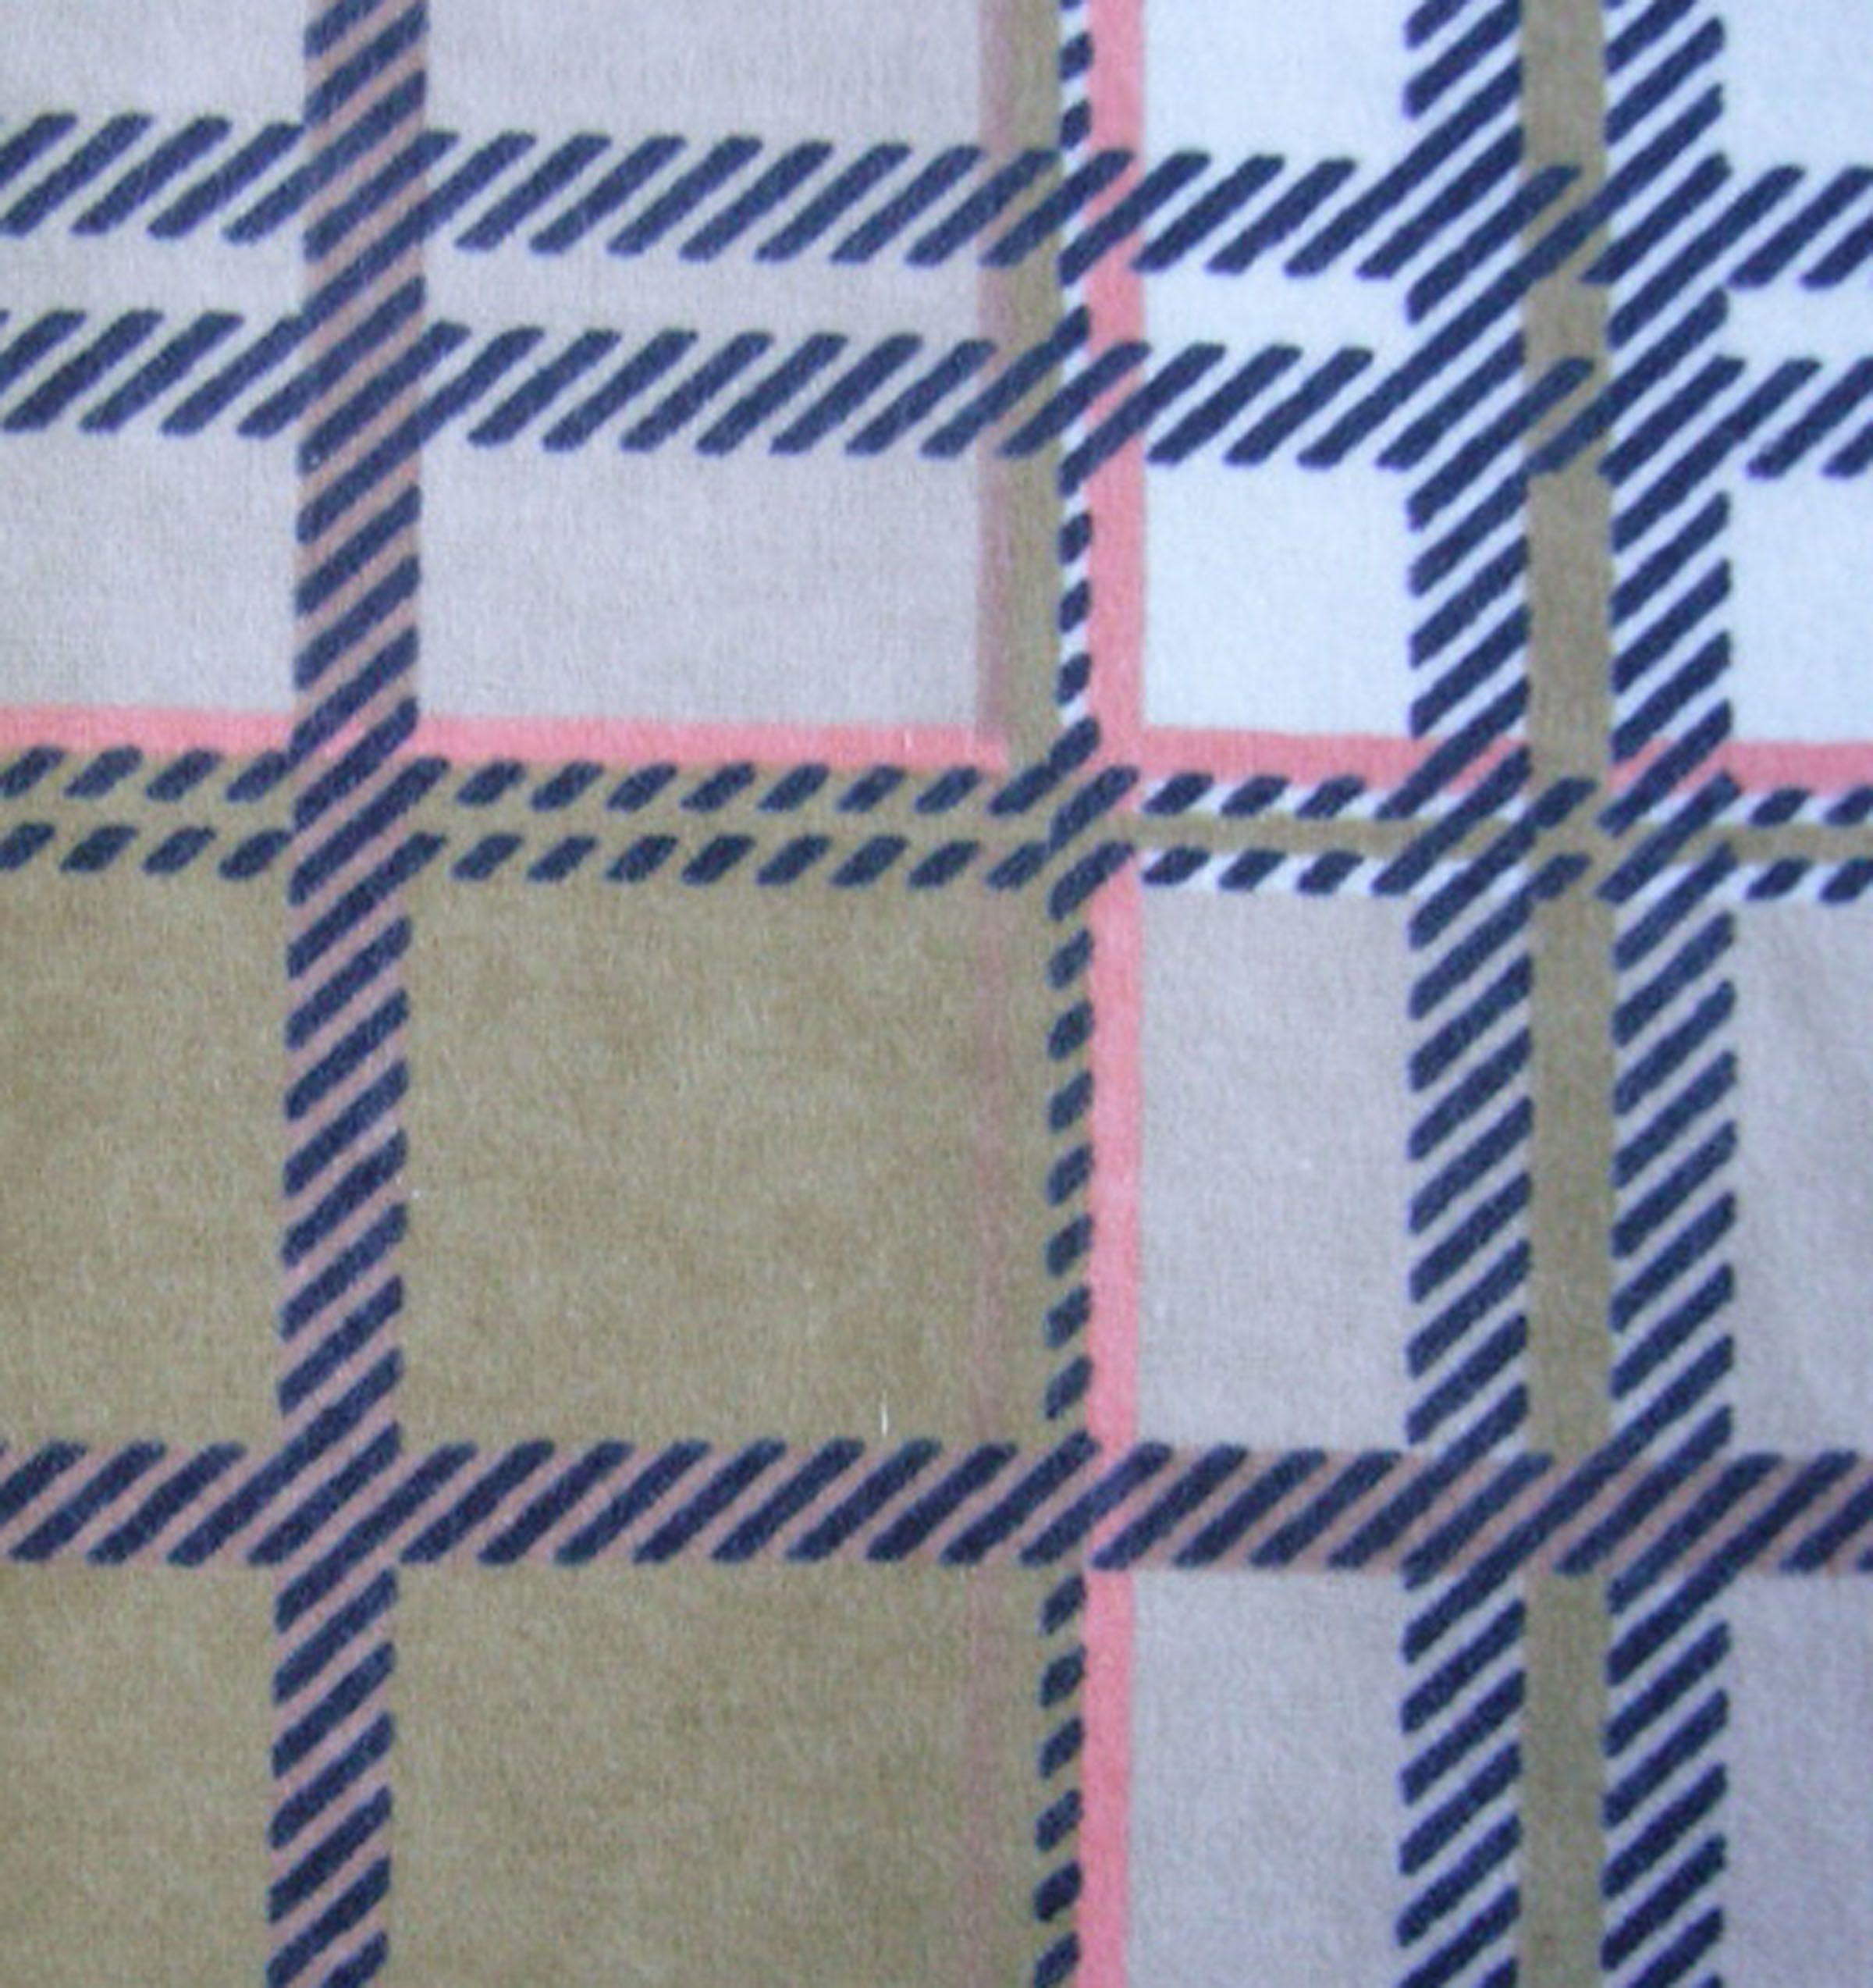 Red flannel fabric  Snuggle Flannel Fabric Plaid Pink  Products  Pinterest  Products